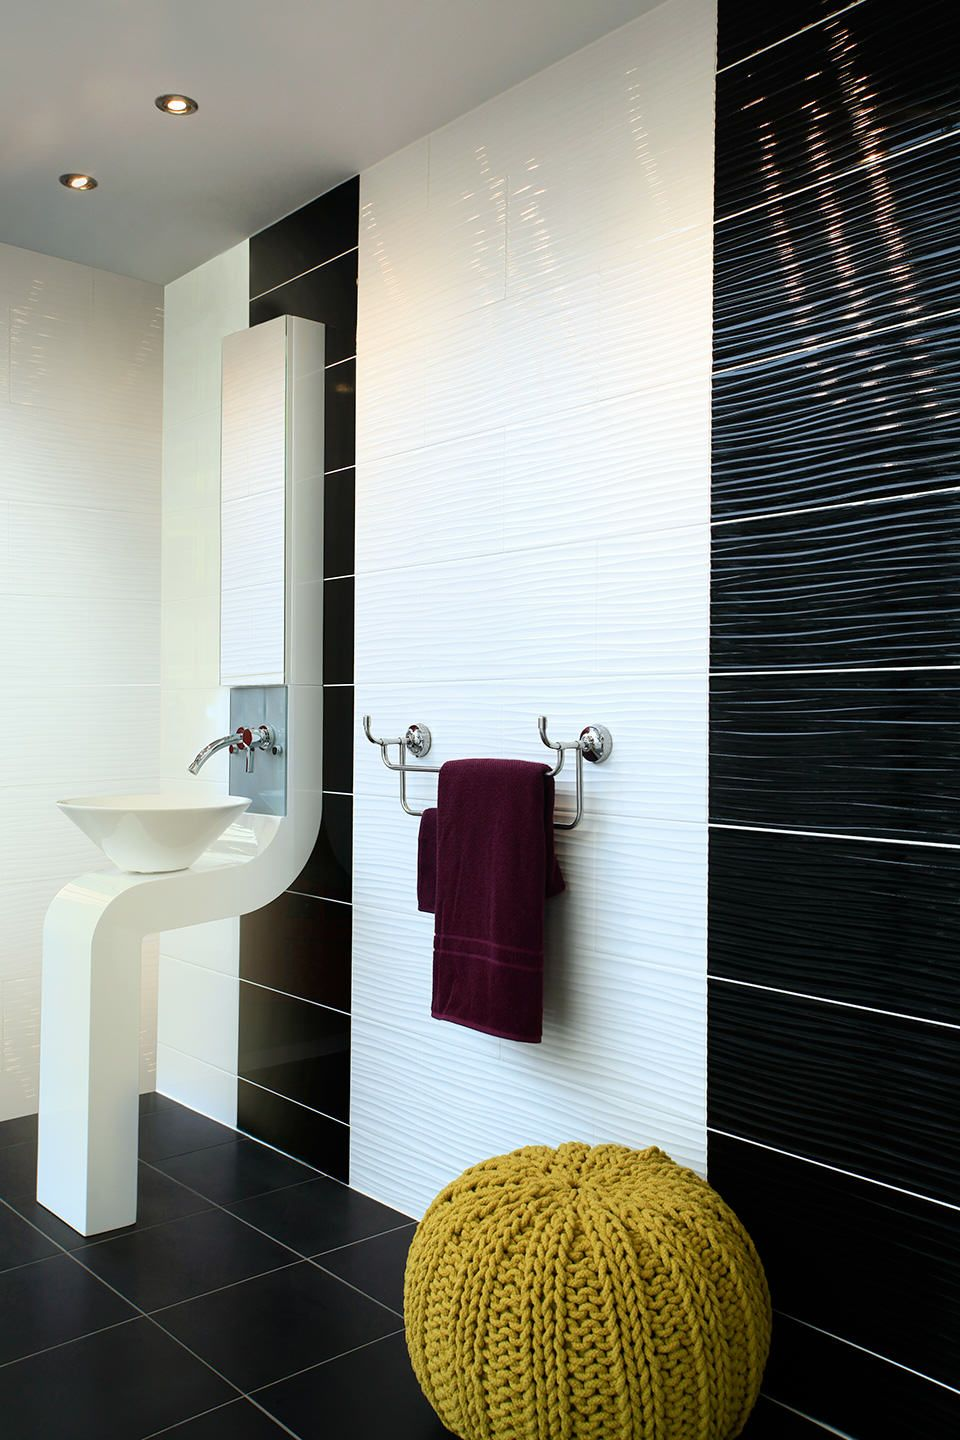 Function By British Ceramic Tile British Ceramic Tile Bathroom Wall Coverings Wall And Floor Tiles Ceramic Tiles